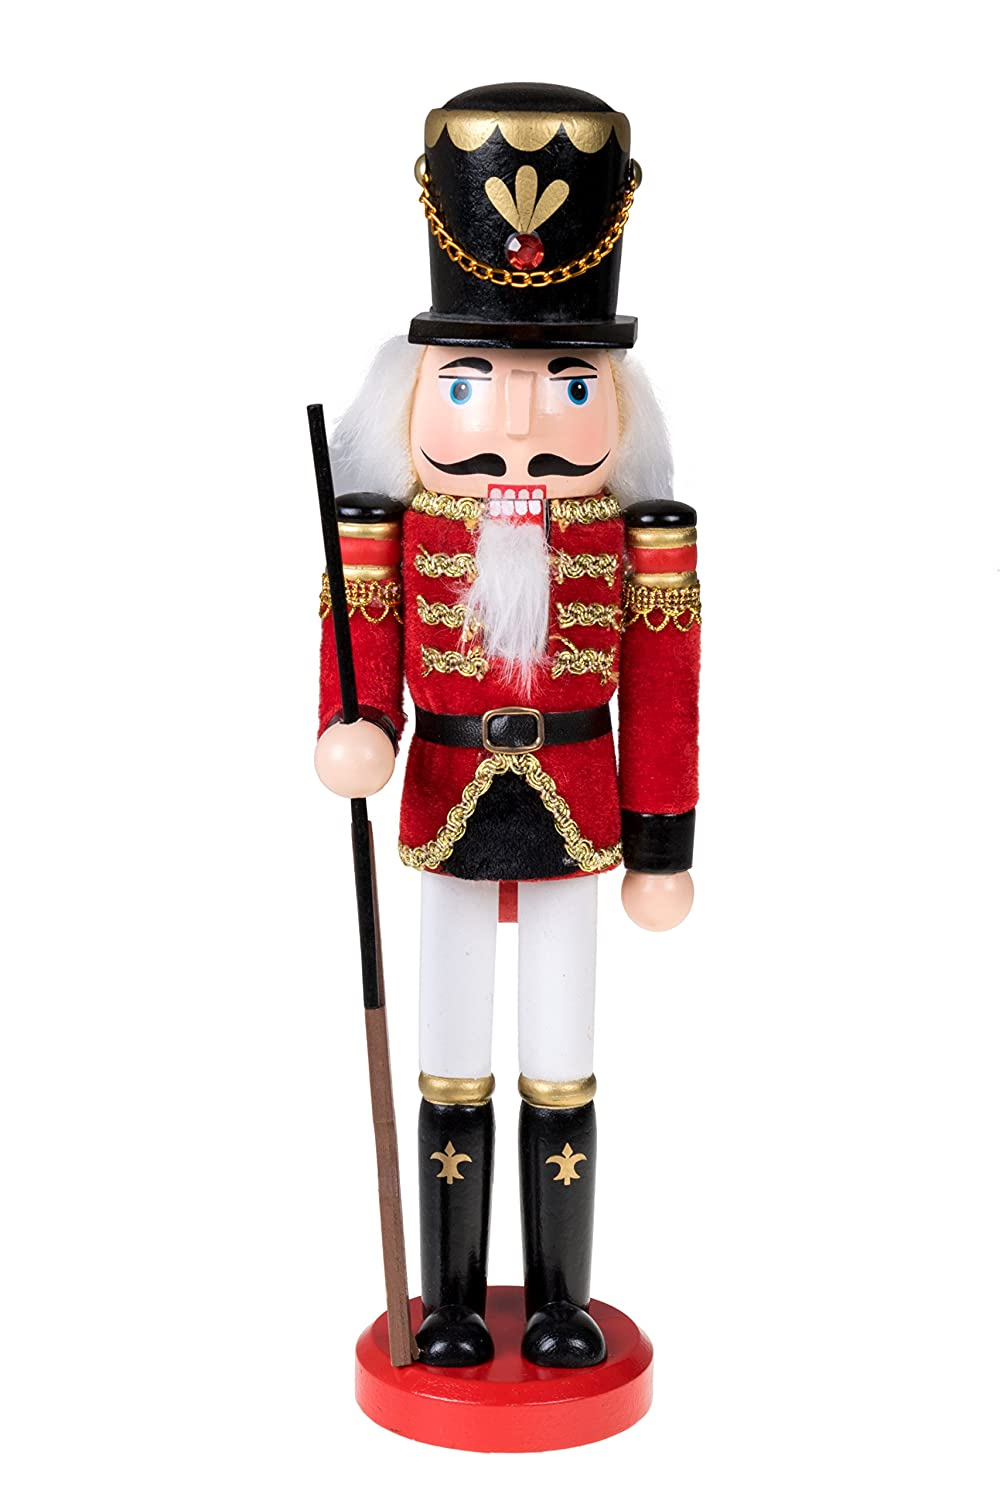 Traditional Wooden Soldier Nutcracker with Rifle by Clever Creations | Festive Christmas Decor | 12